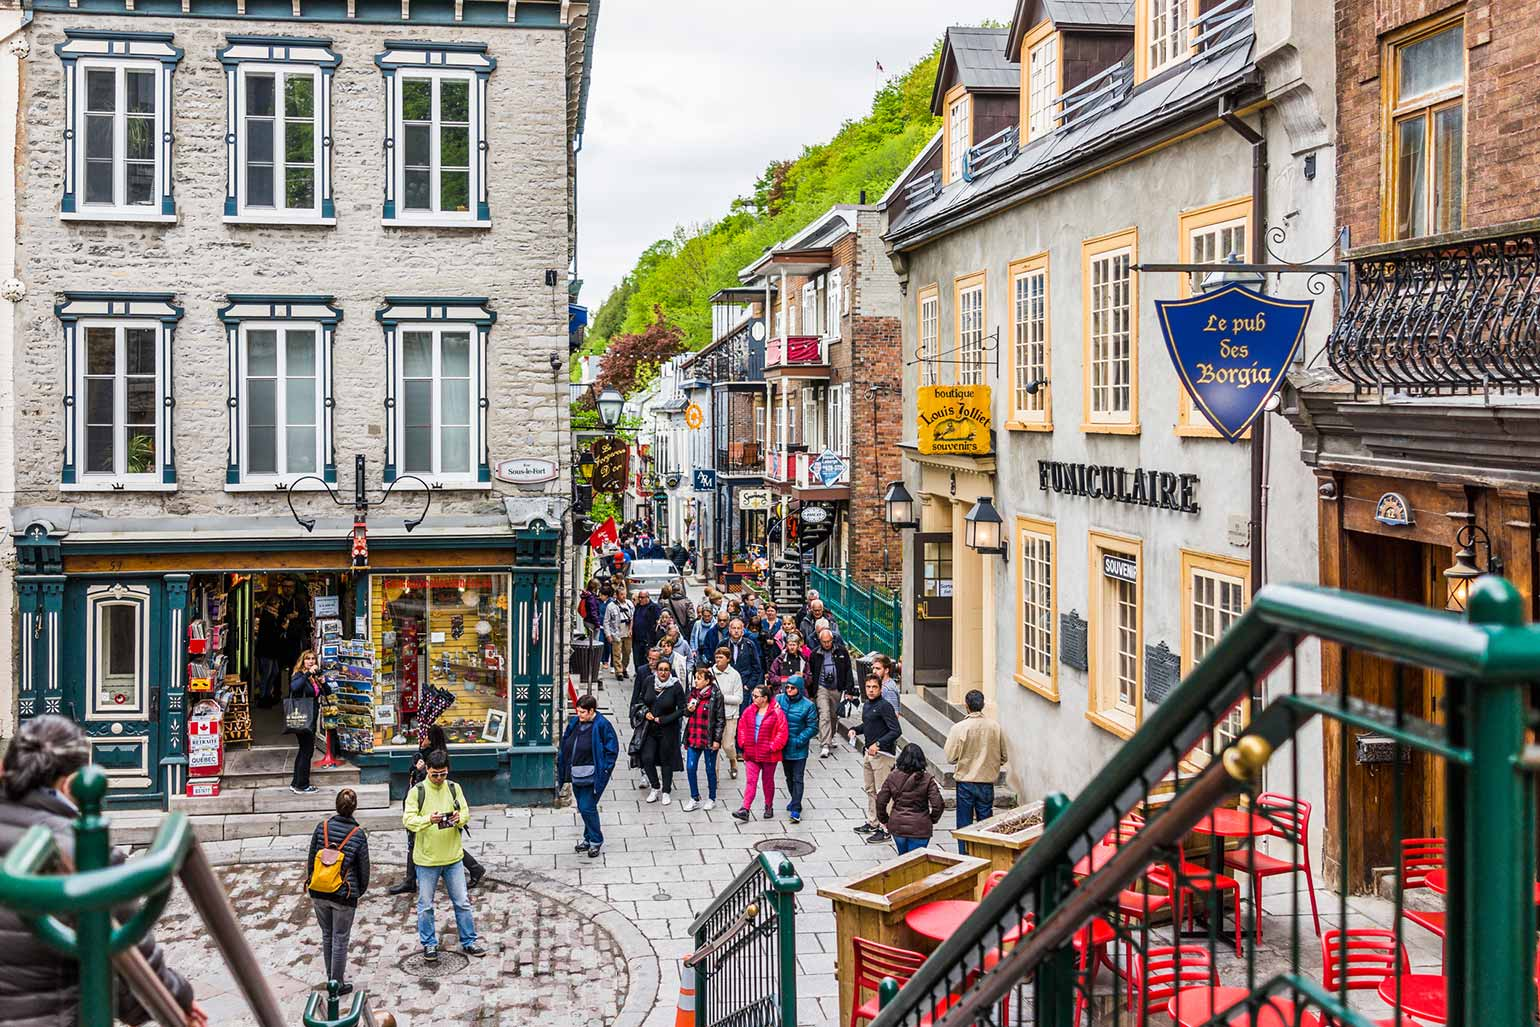 People exploring the stores and restaurants on Rue du Petit Champlain in Quebec City.